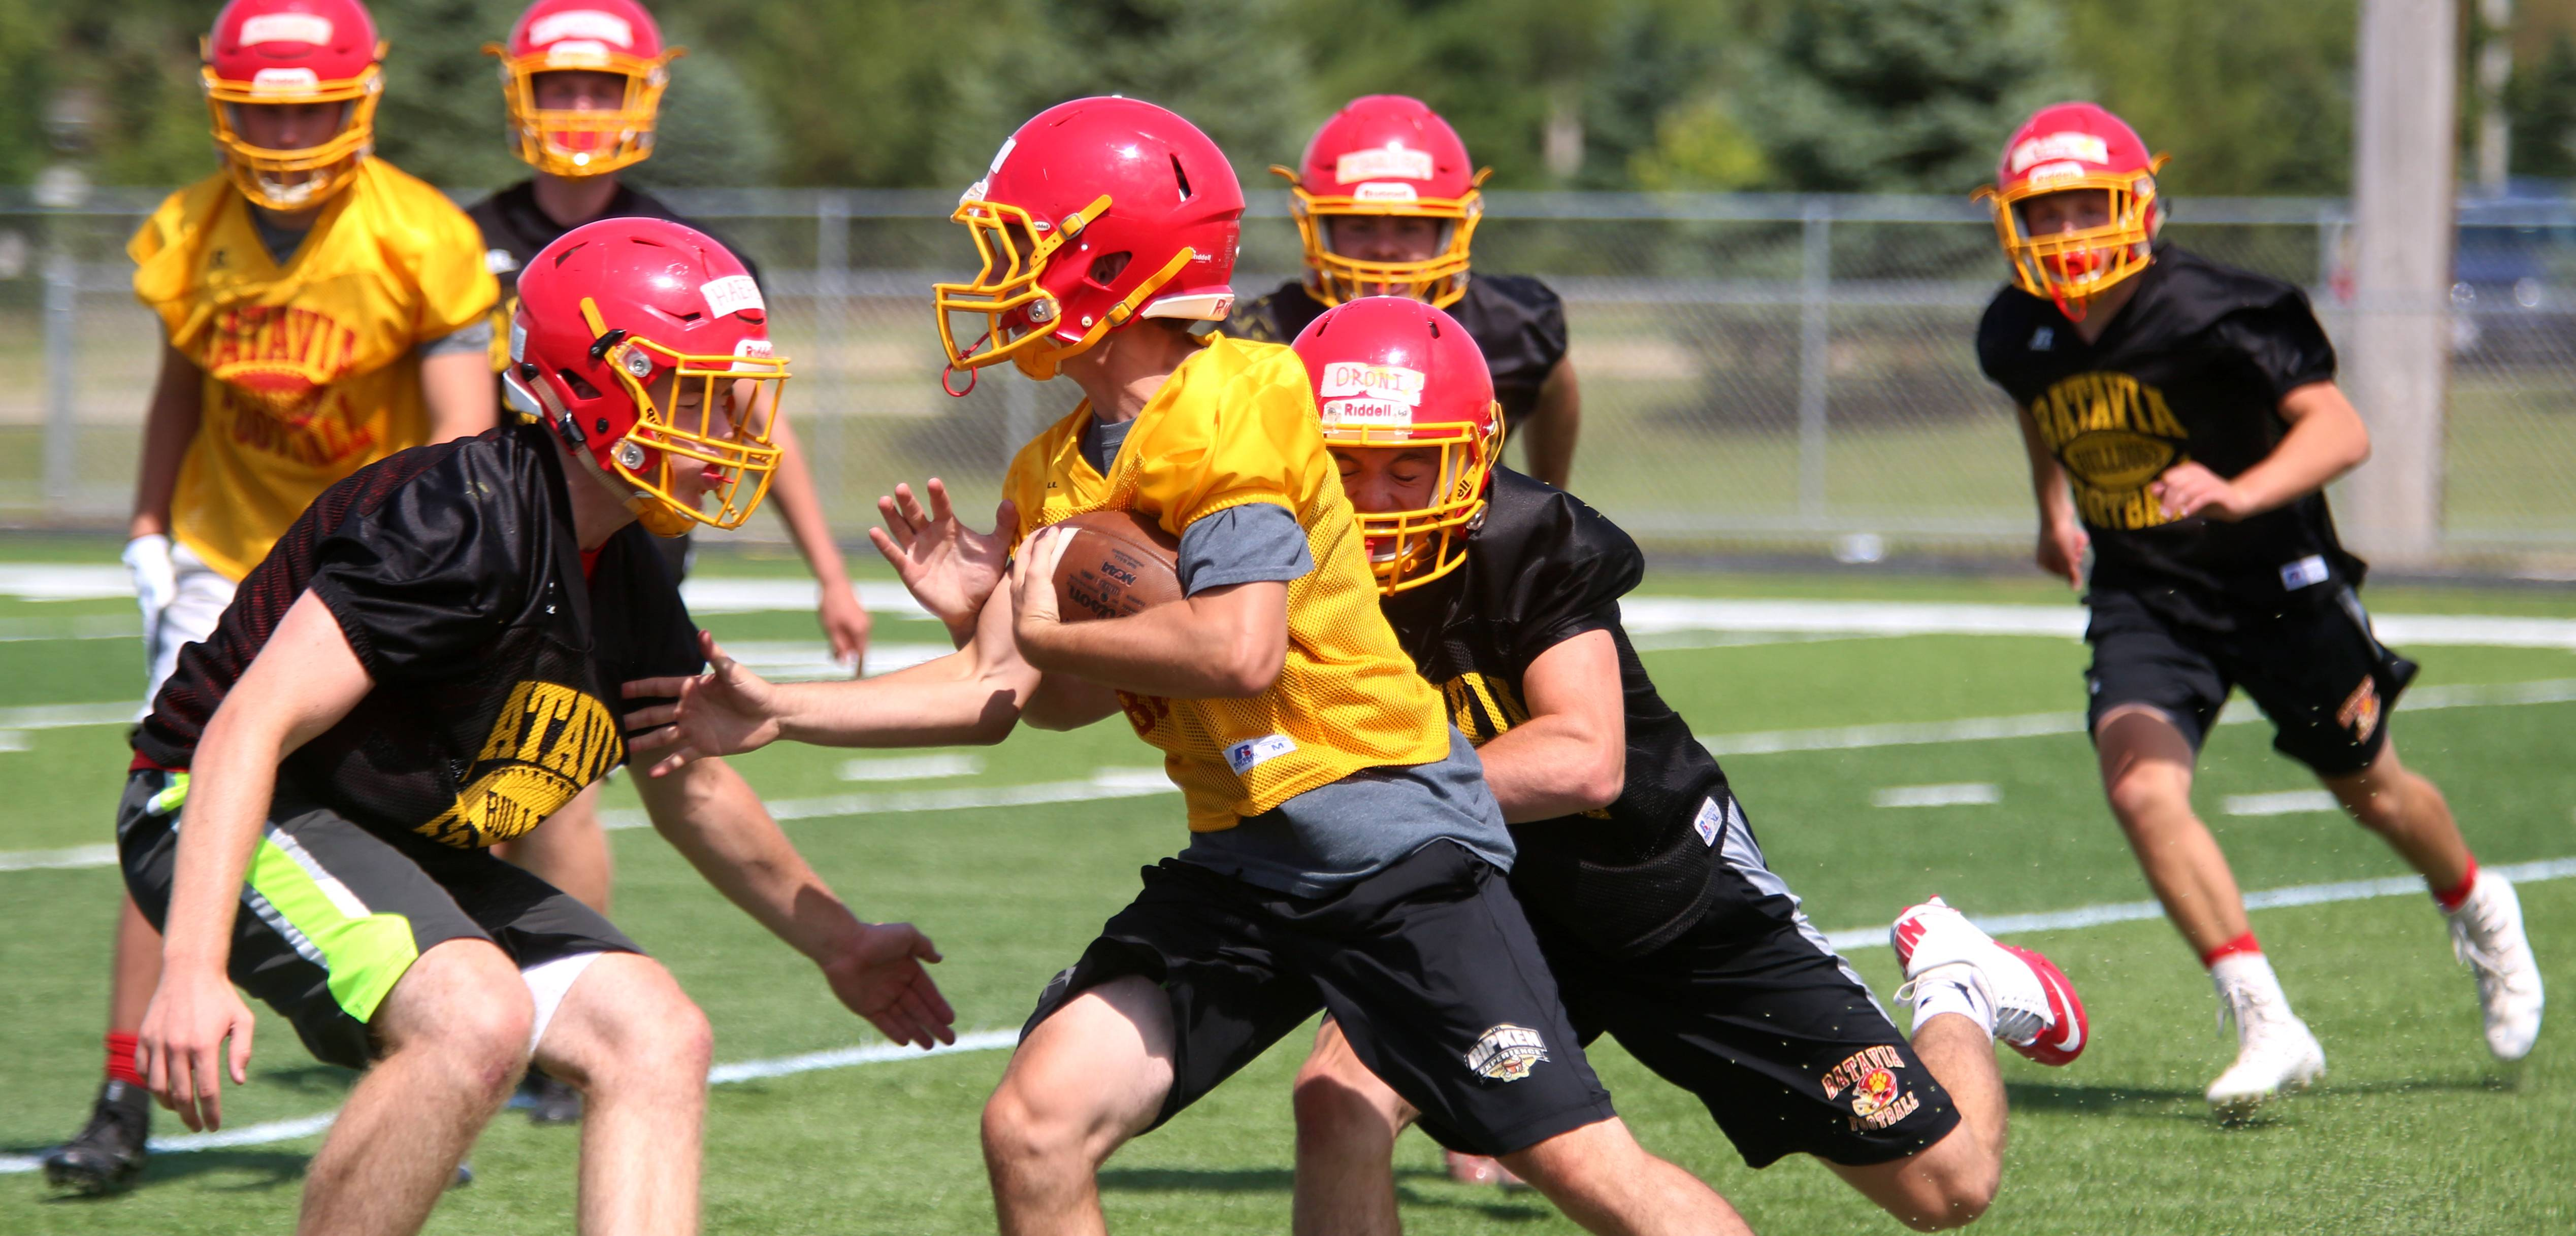 Players run through drills during the first day of the varsity practice season for Batavia High School football at Bulldog Stadium in Batavia Monday.